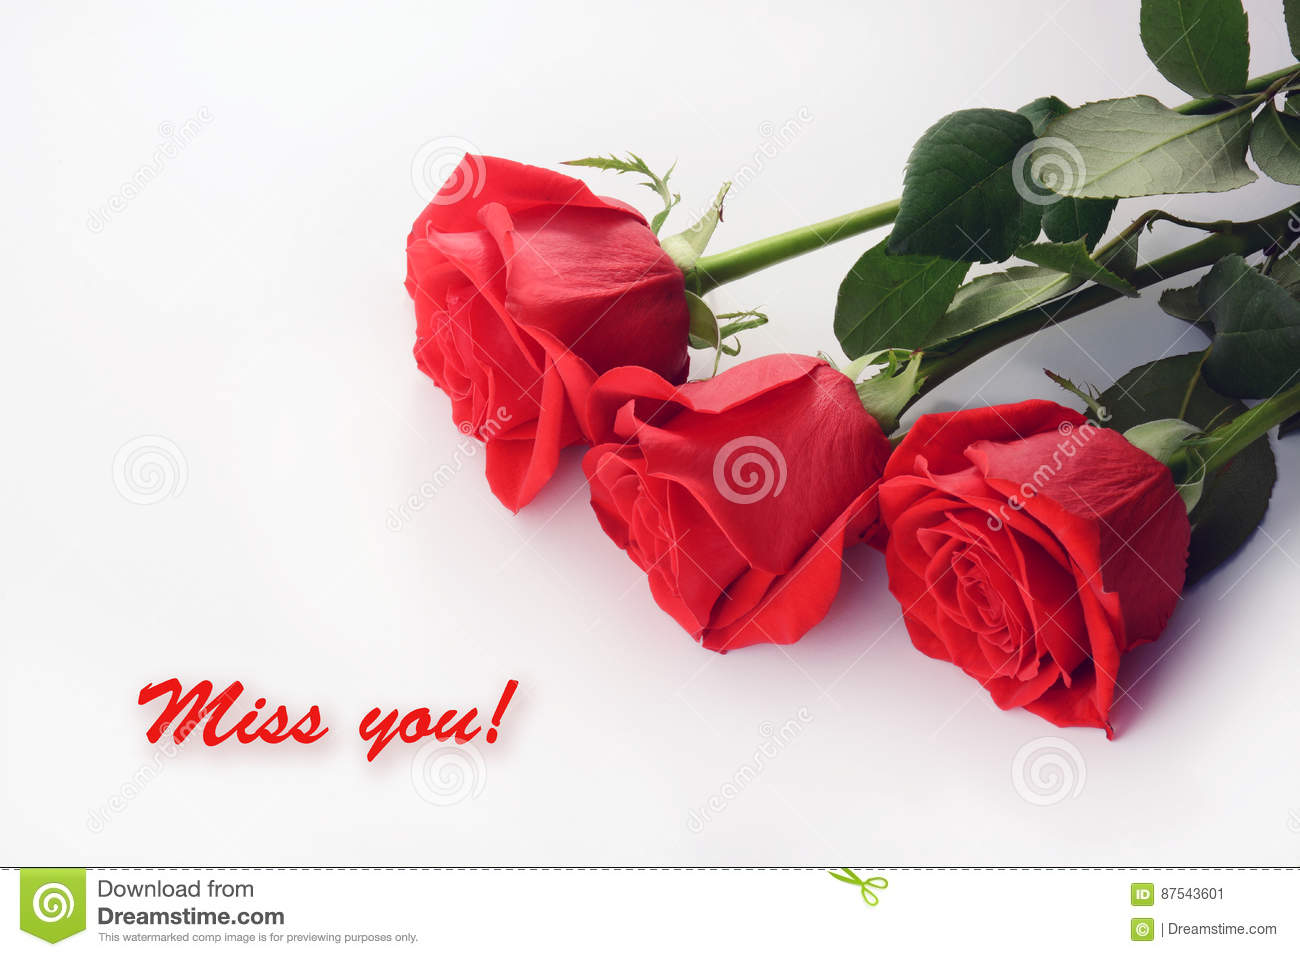 Miss You Card Flowers Stock Photos 56 Images